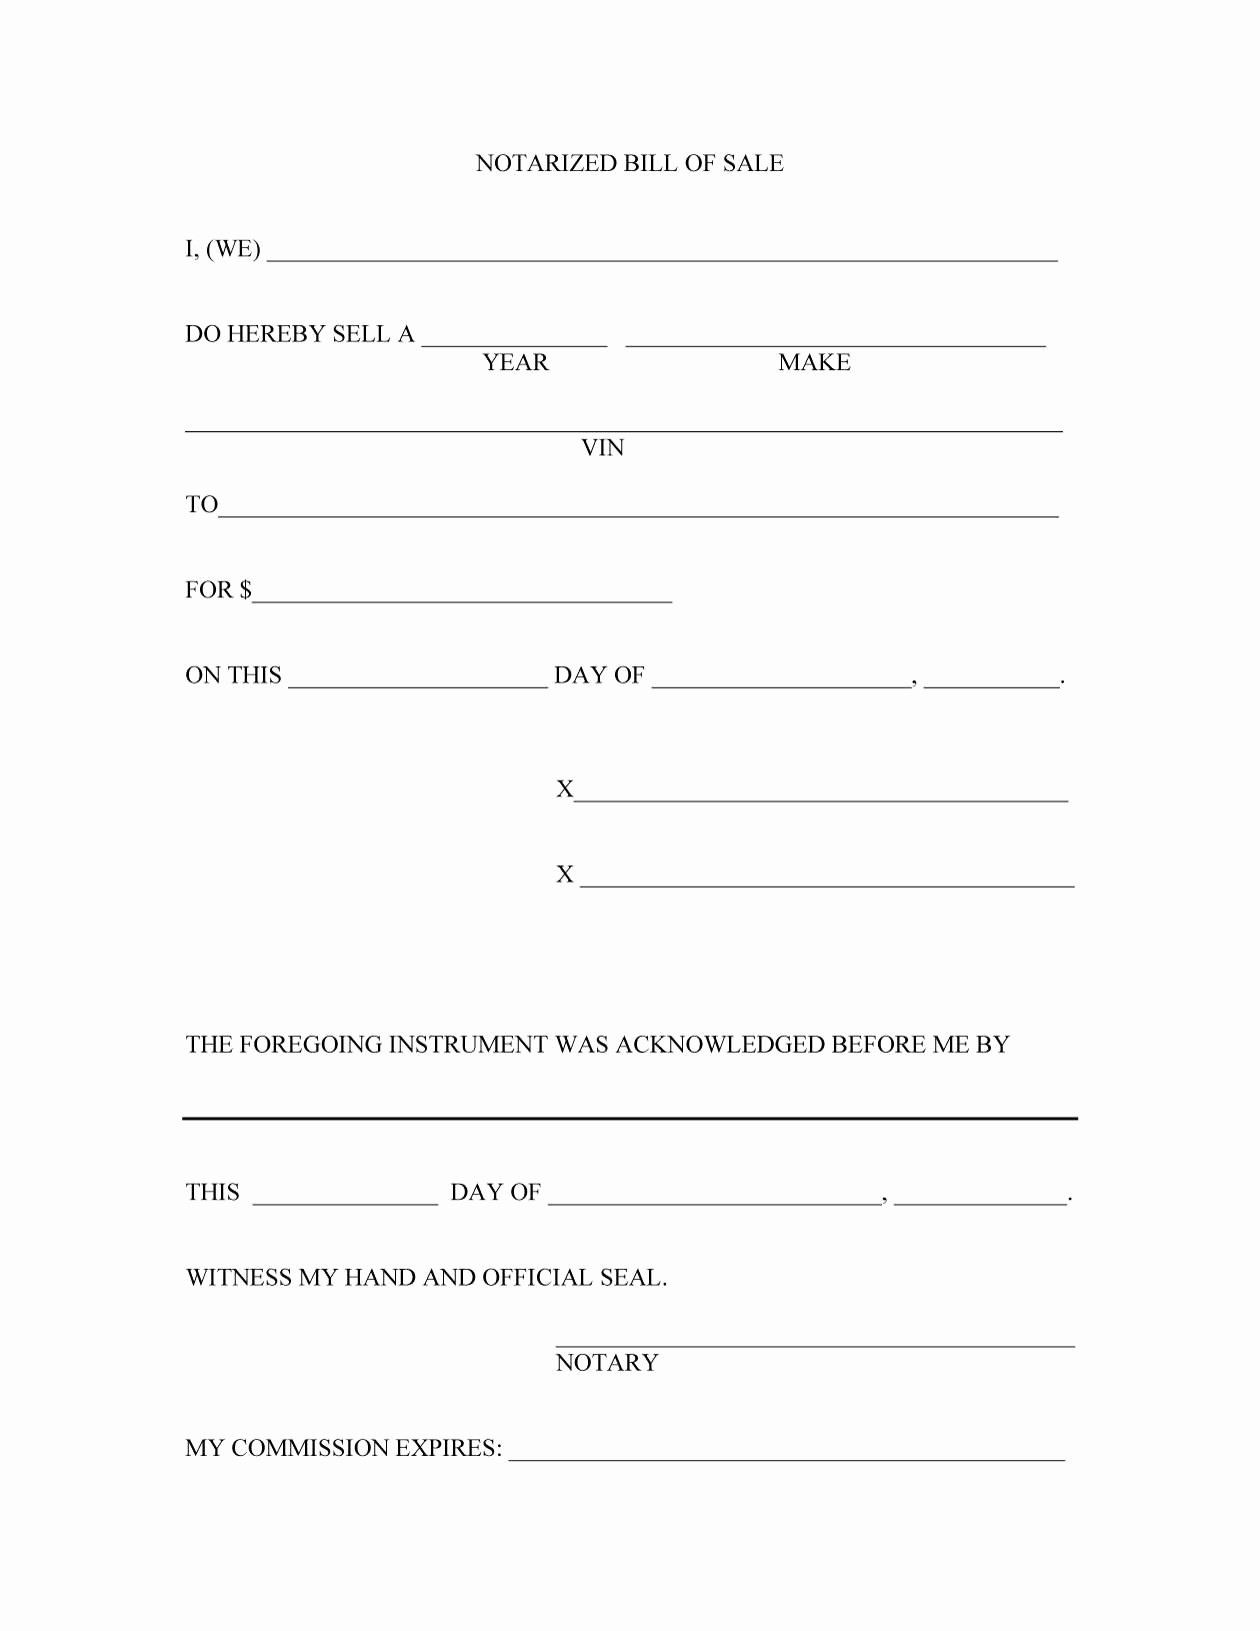 Bill Of Sale form Example Beautiful 45 Fee Printable Bill Of Sale Templates Car Boat Gun